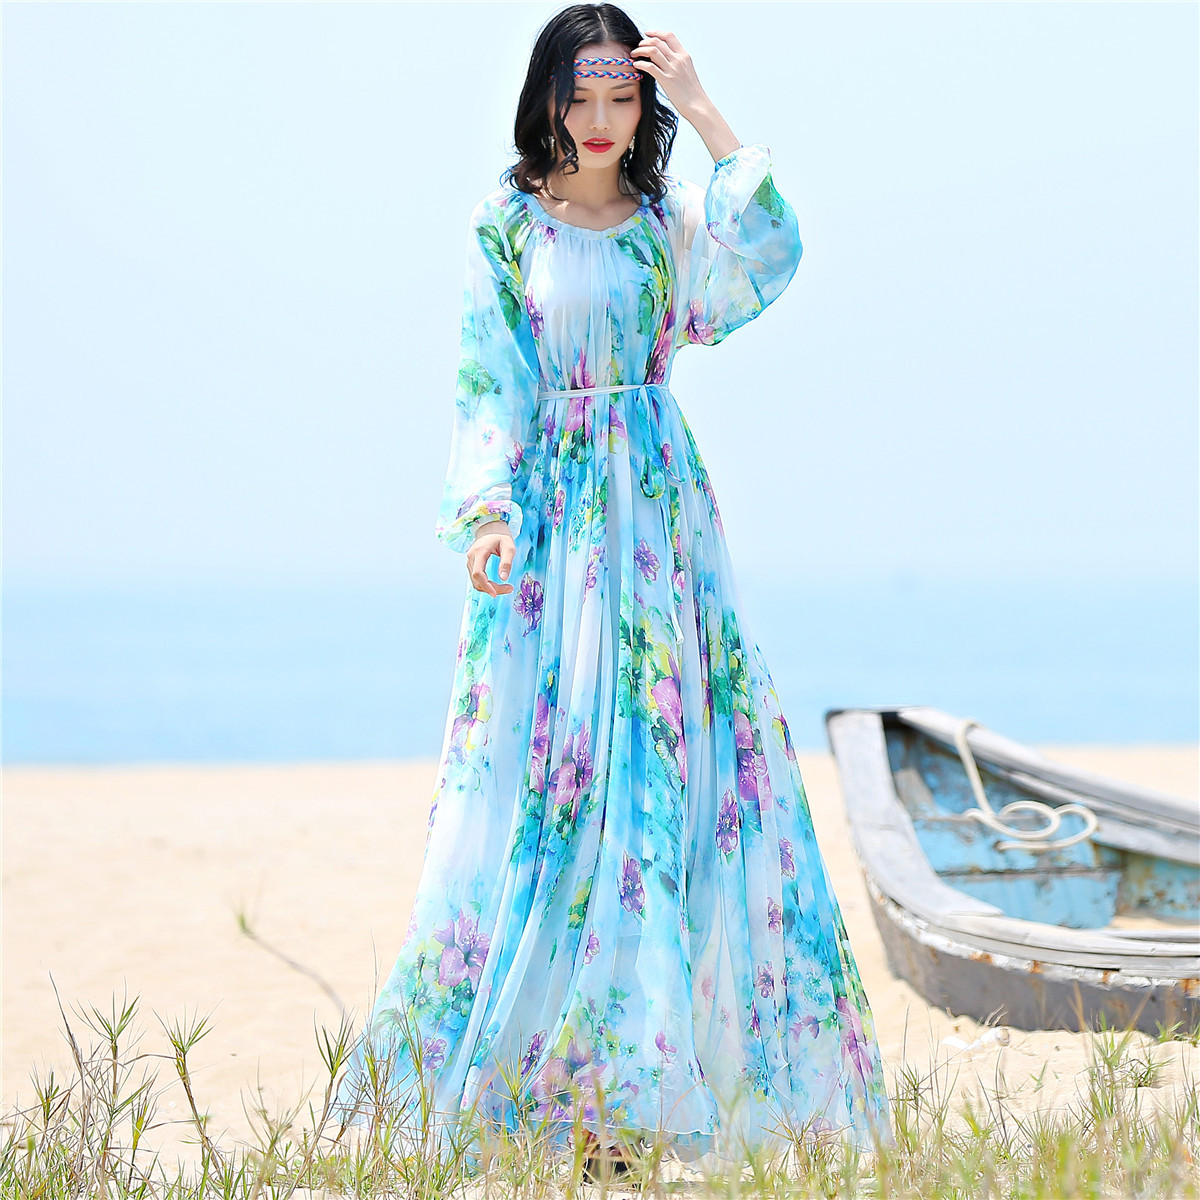 fde498a5892 2017 chiffon Long Sleeve maxi dress bohemia dress full plus size  celebrity graduation Dinner Dress Beach Sundress - Boho Gipsy Store